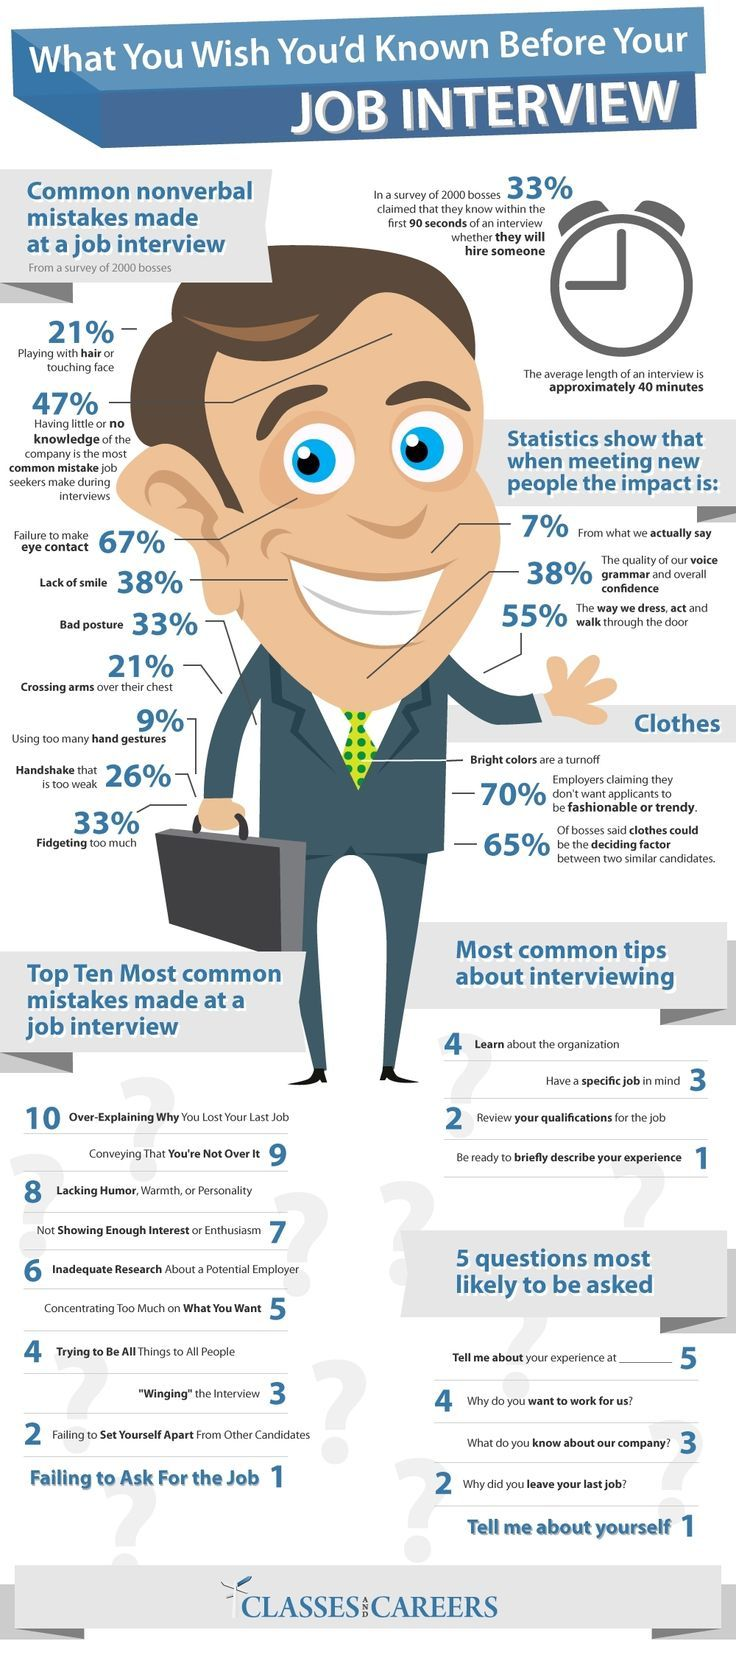 job interview tips - The Best Job Interview Tips You Can Get